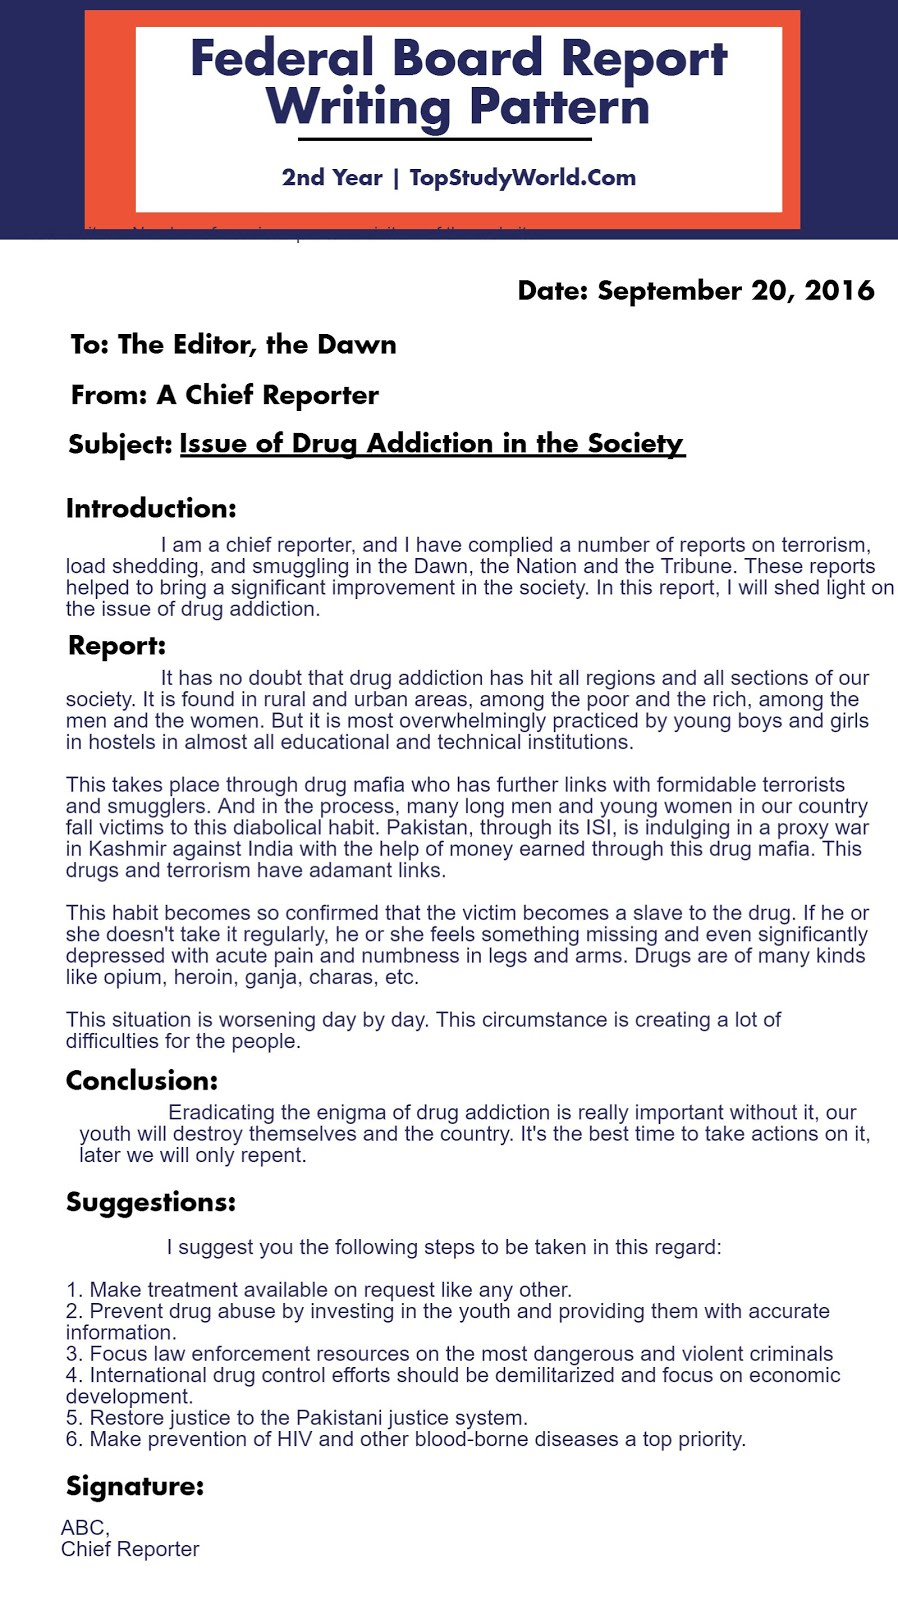 Drug Counselor Cover Letter Picturing The Personal Essay A Visual Guide Creative Nonfiction